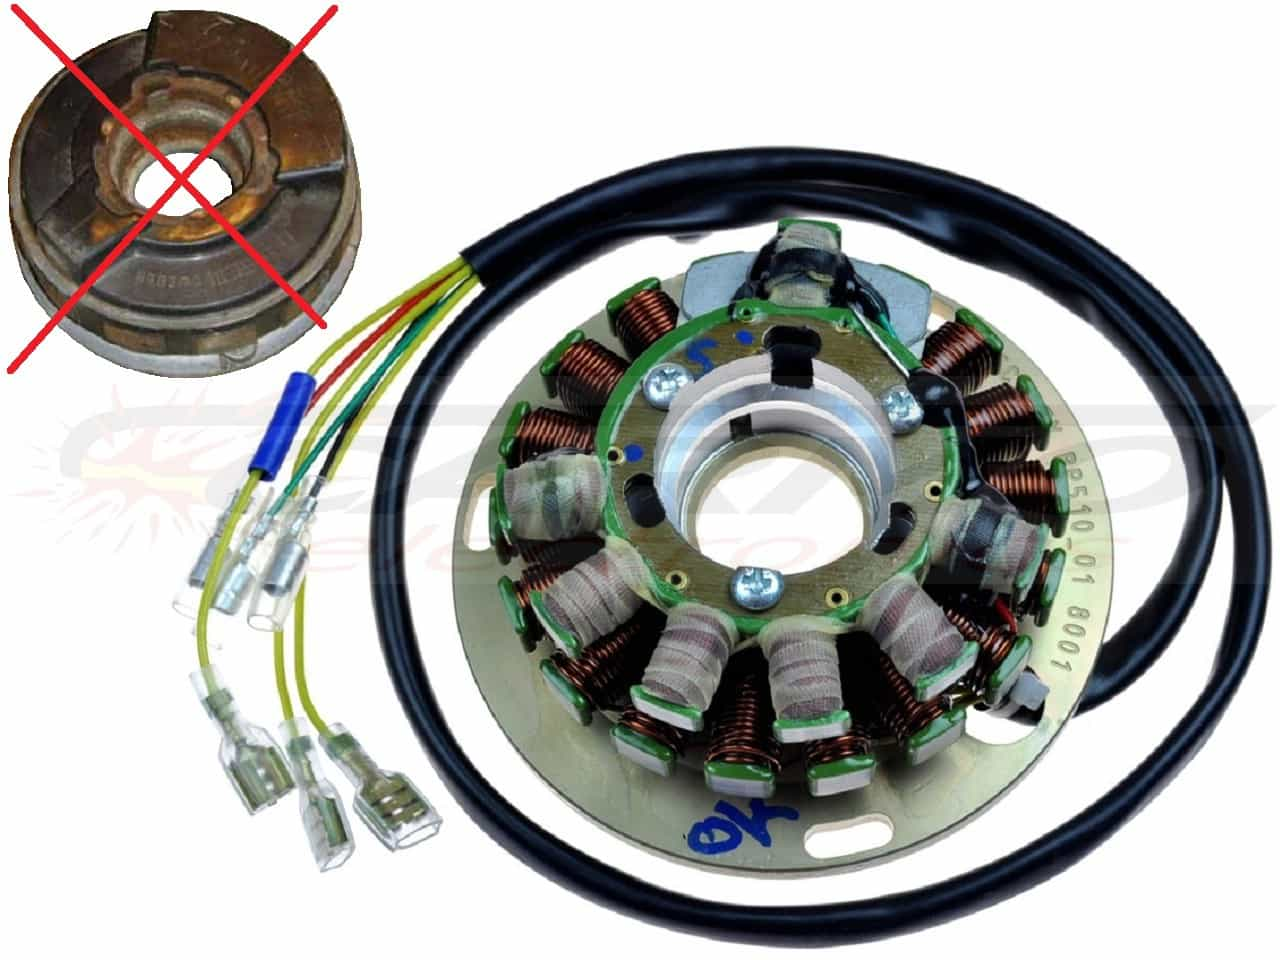 ST5051L - Lighting & Ignition Stator - Click Image to Close